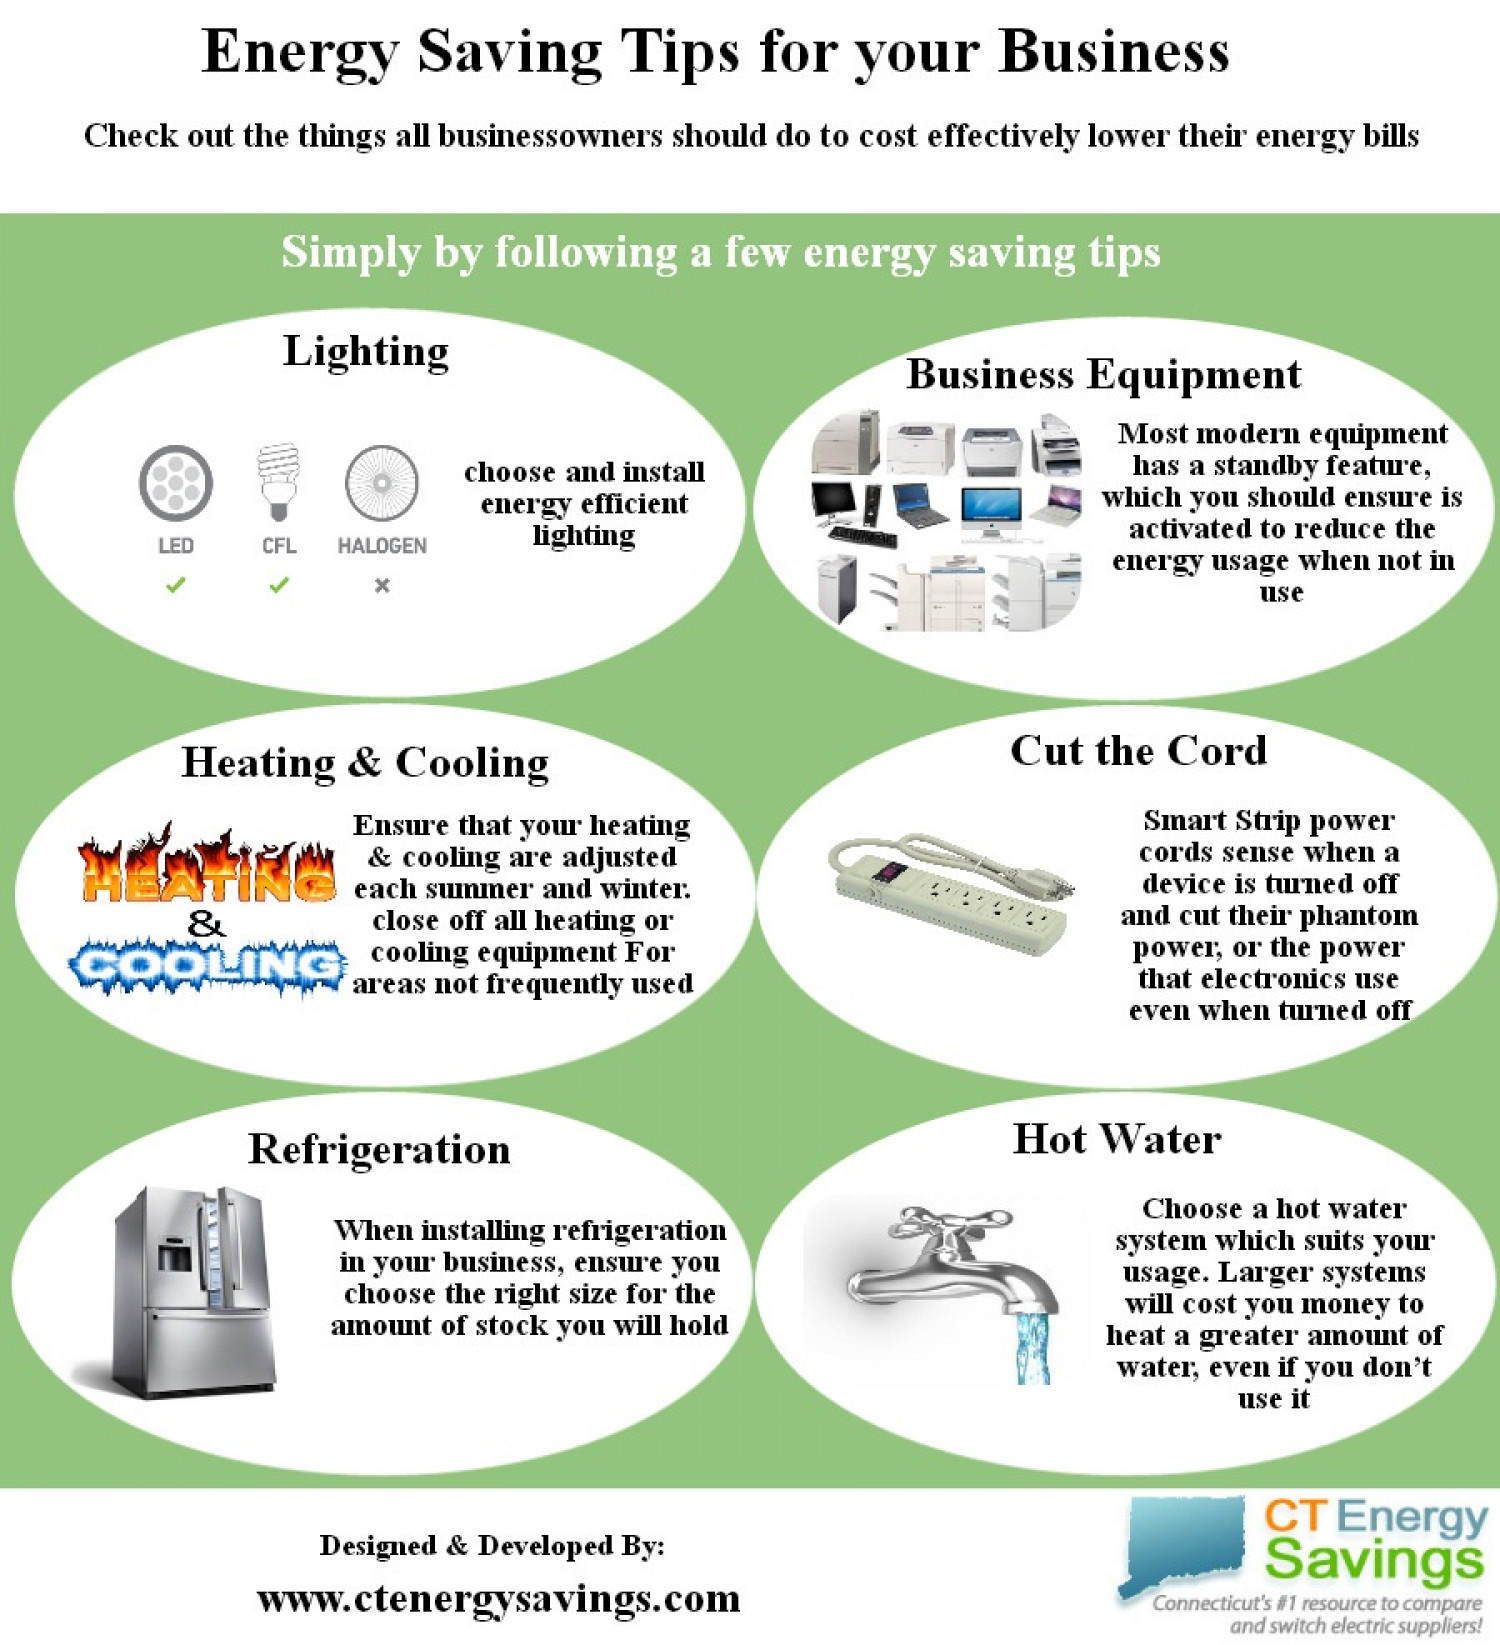 Energy Saving Tips for your Business | Visual.ly